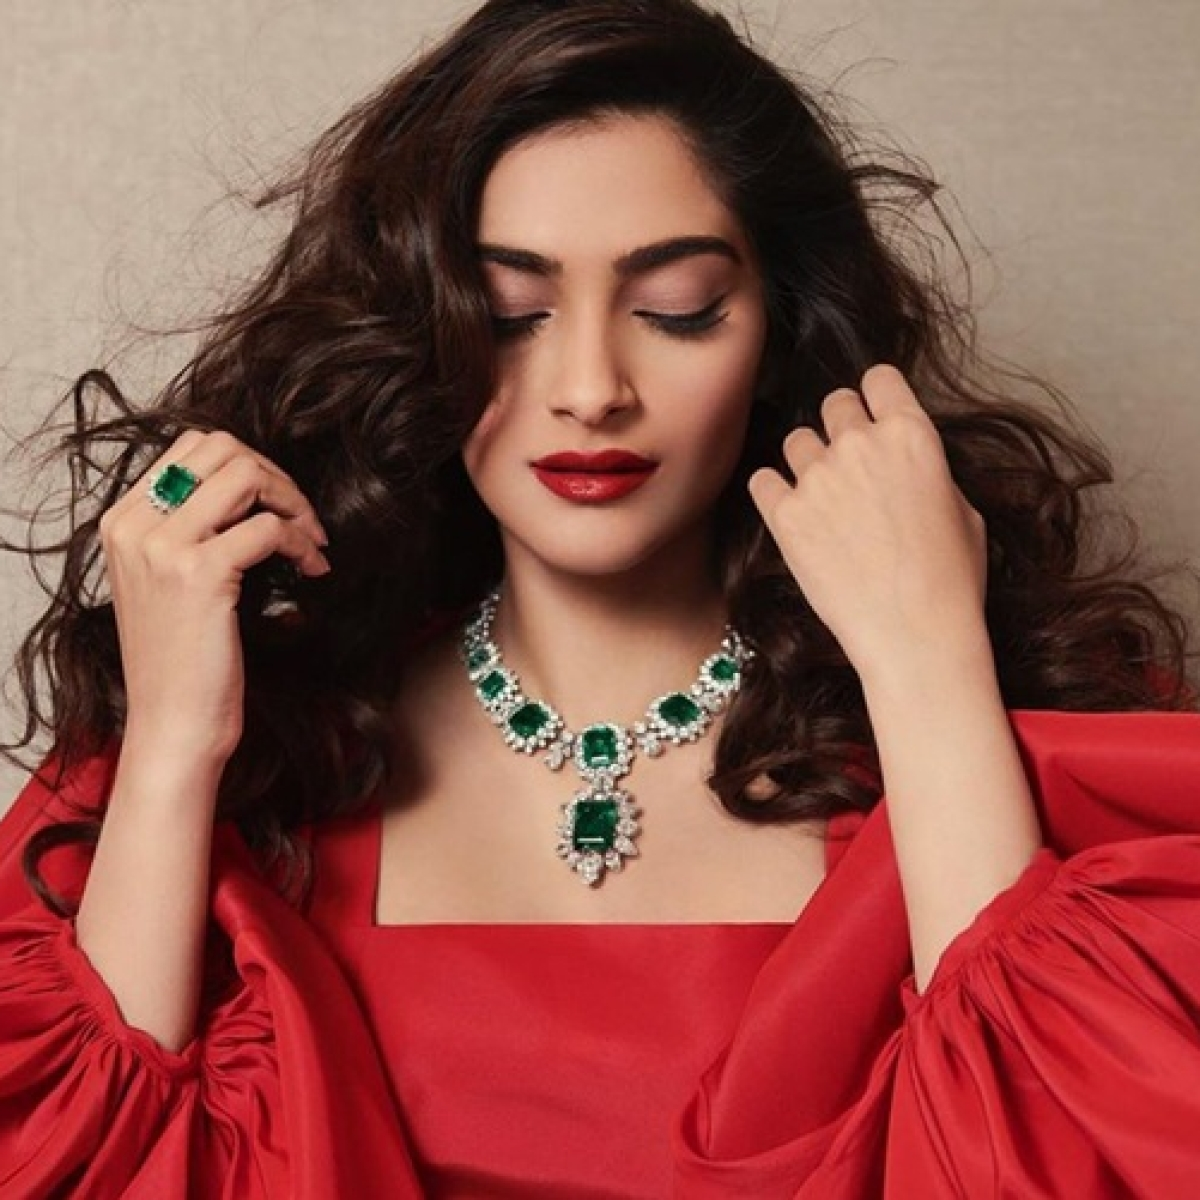 'Papa ki pari wakes up, googles for a quote...': Sonam Kapoor gets brutally trolled for 'Be on the right side of history' tweet